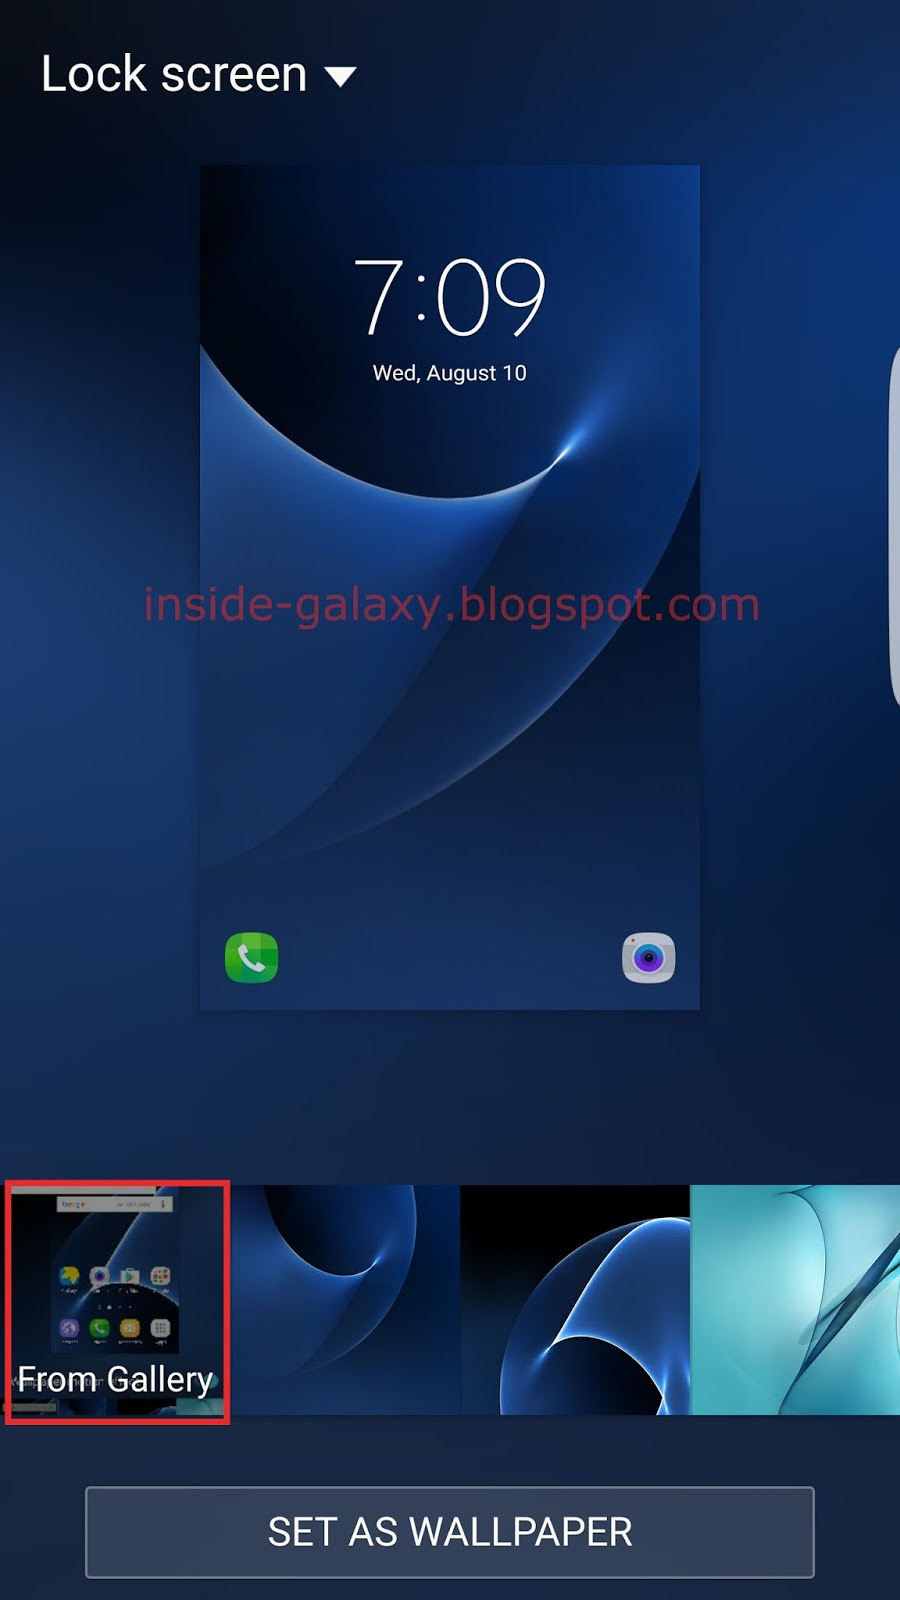 Samsung Galaxy S7 Edge How To Change Lock Screen Wallpaper In